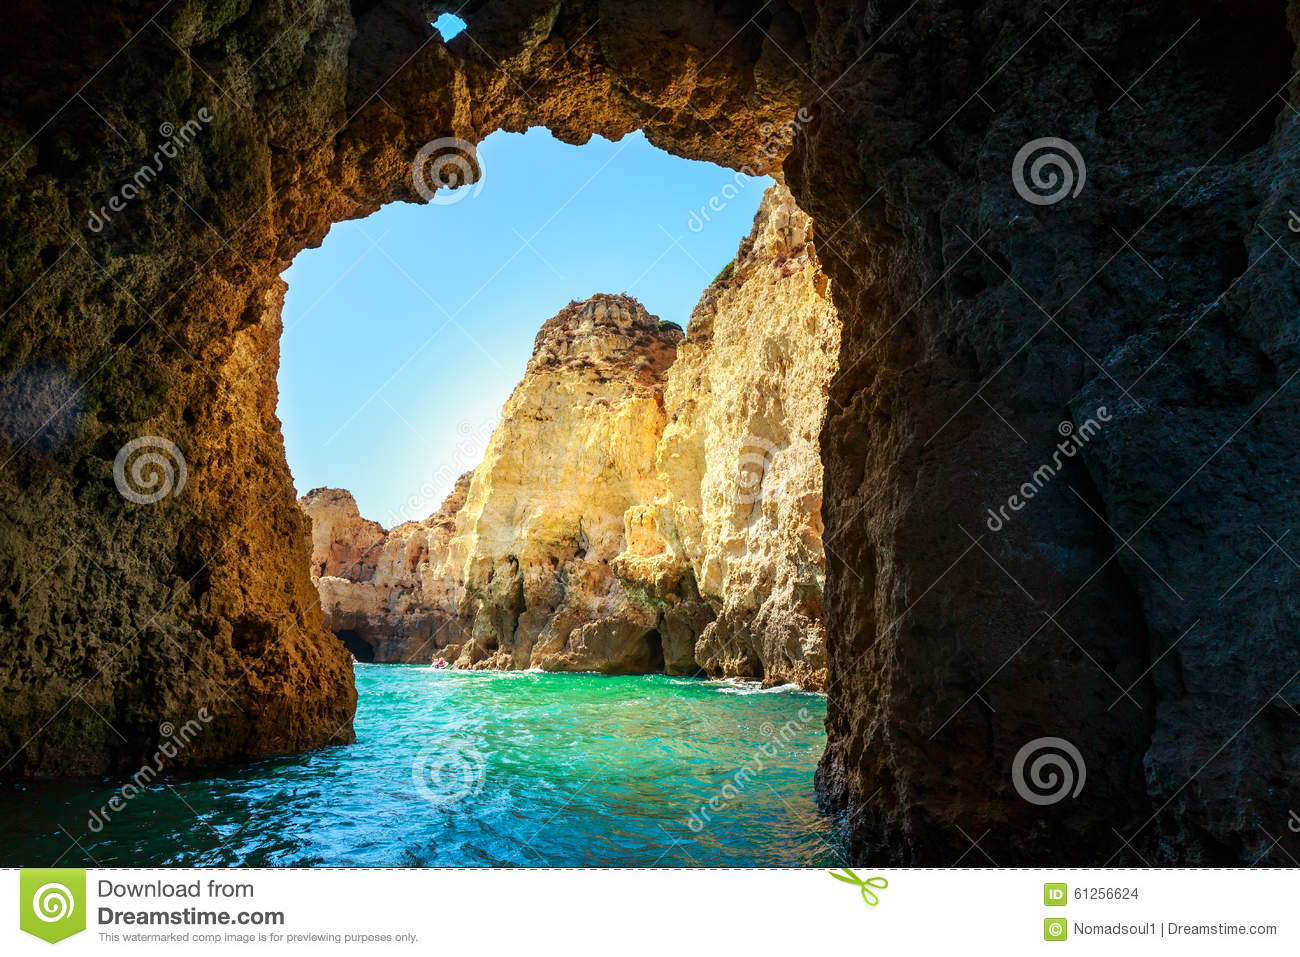 Picturesque rocky grotto in the sea against blue sky, Portugal.